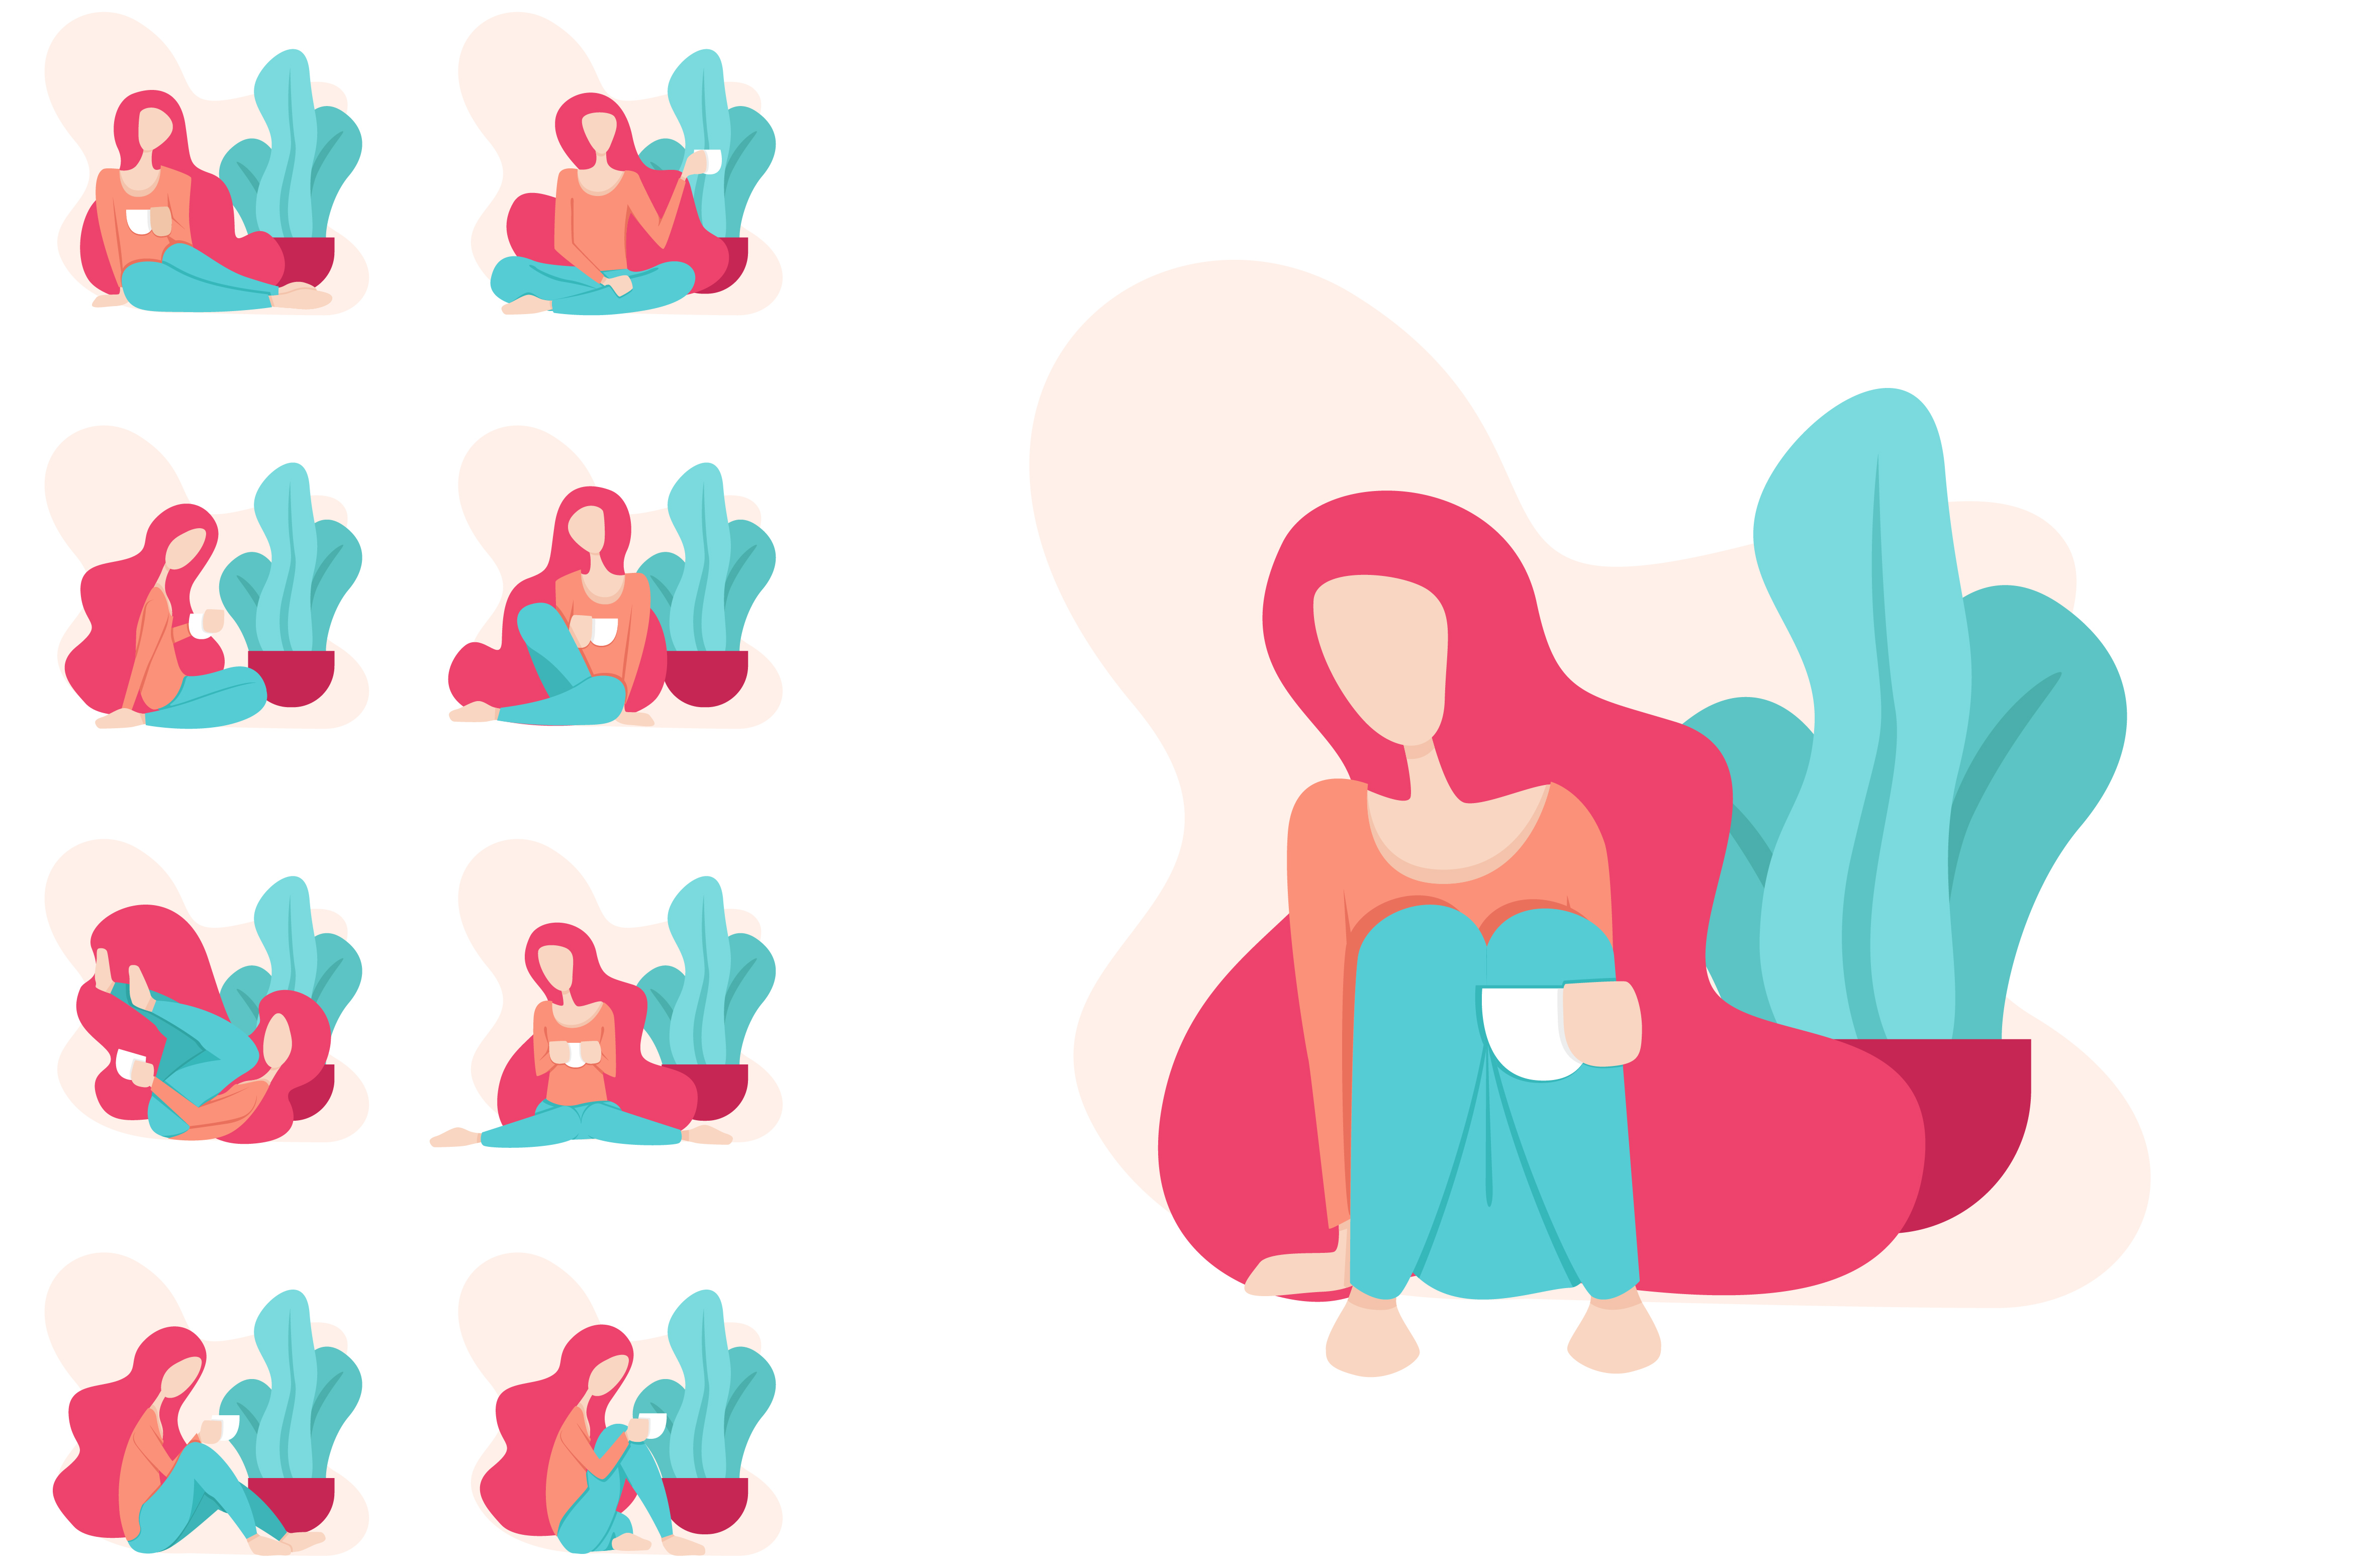 Download Free Illustration Of A Woman Relaxing Graphic By Setiawanarief111 for Cricut Explore, Silhouette and other cutting machines.